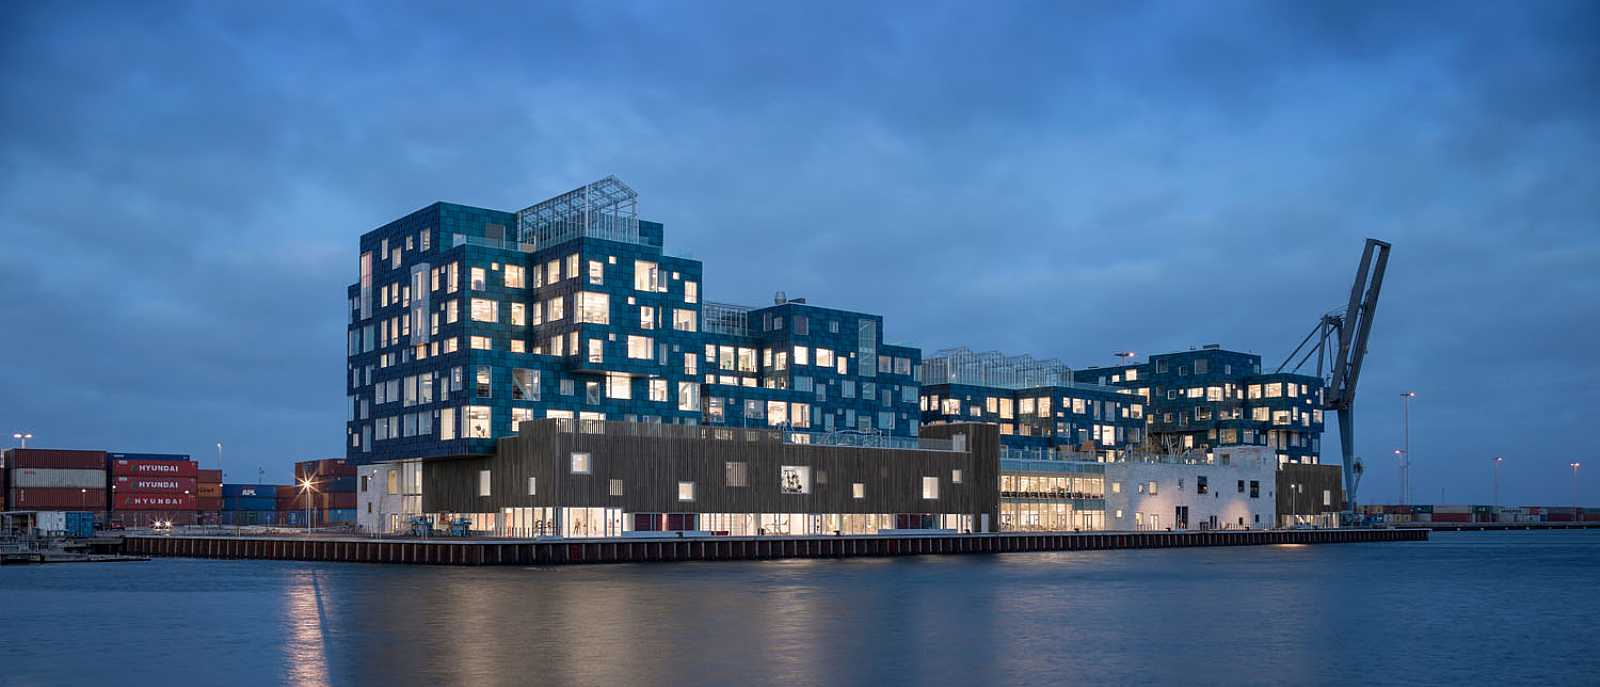 Copenhagen-International-School-Nordhavn-C-F-Moeller-szene-by-night